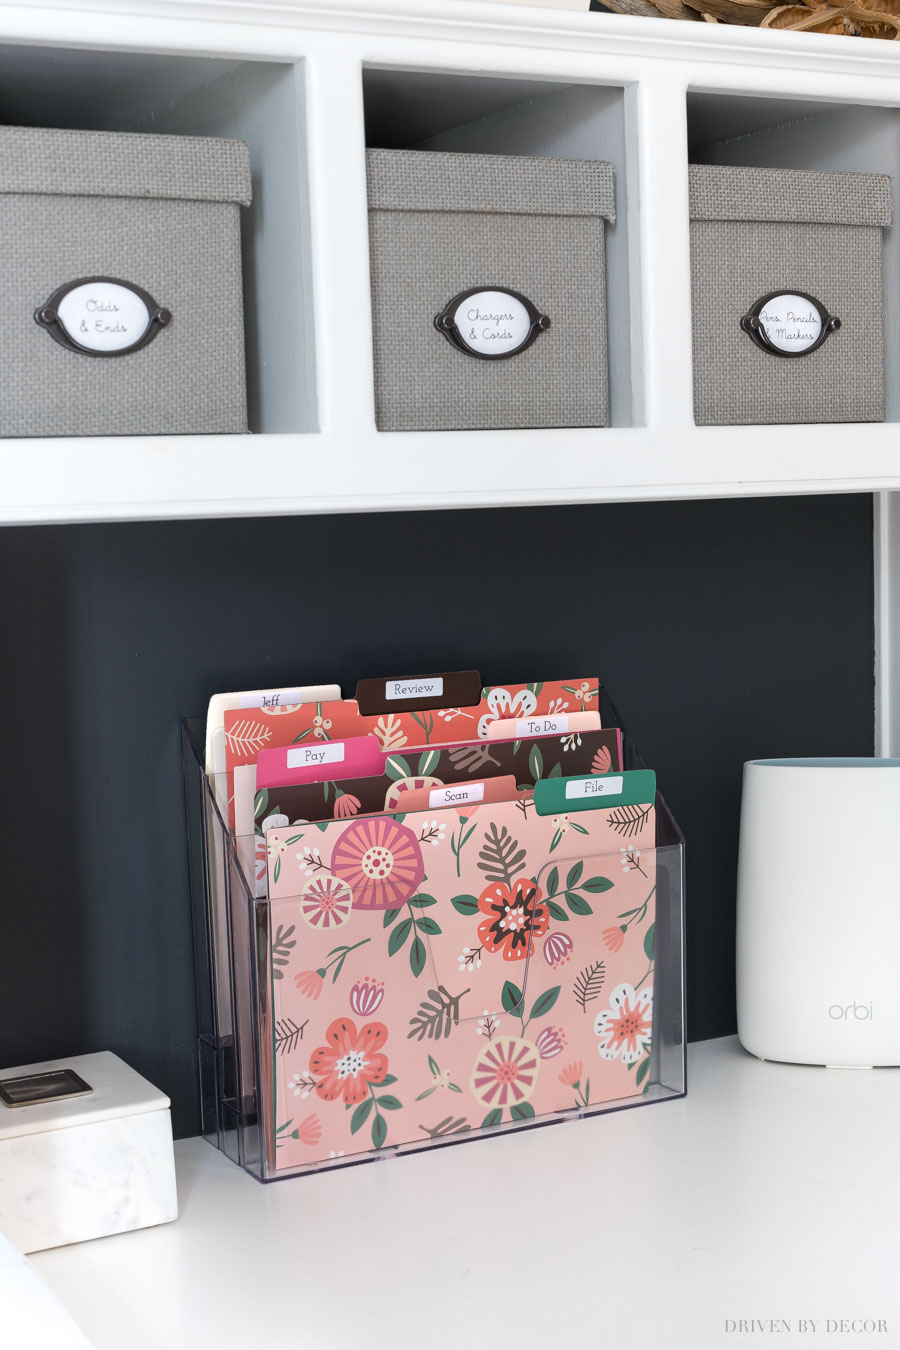 A simple desktop mail organizer with labeled files - so smart as part of a home mail organizing station!